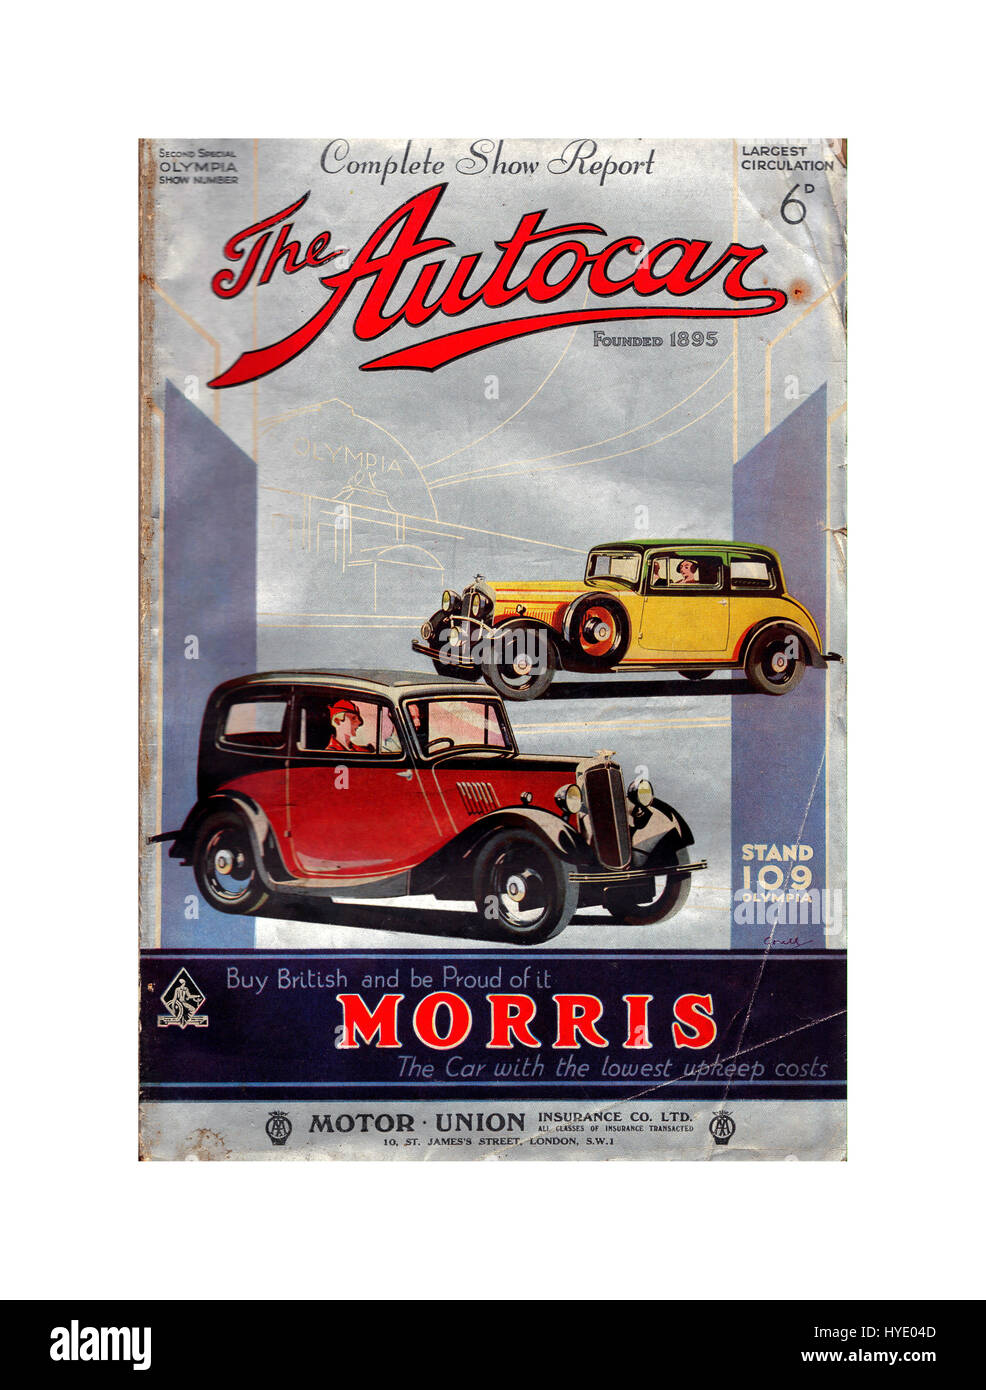 Vintage 1895 'The Autocar' car magazine priced at 6d featuring British Morris cars on special Motor Show - Stock Image